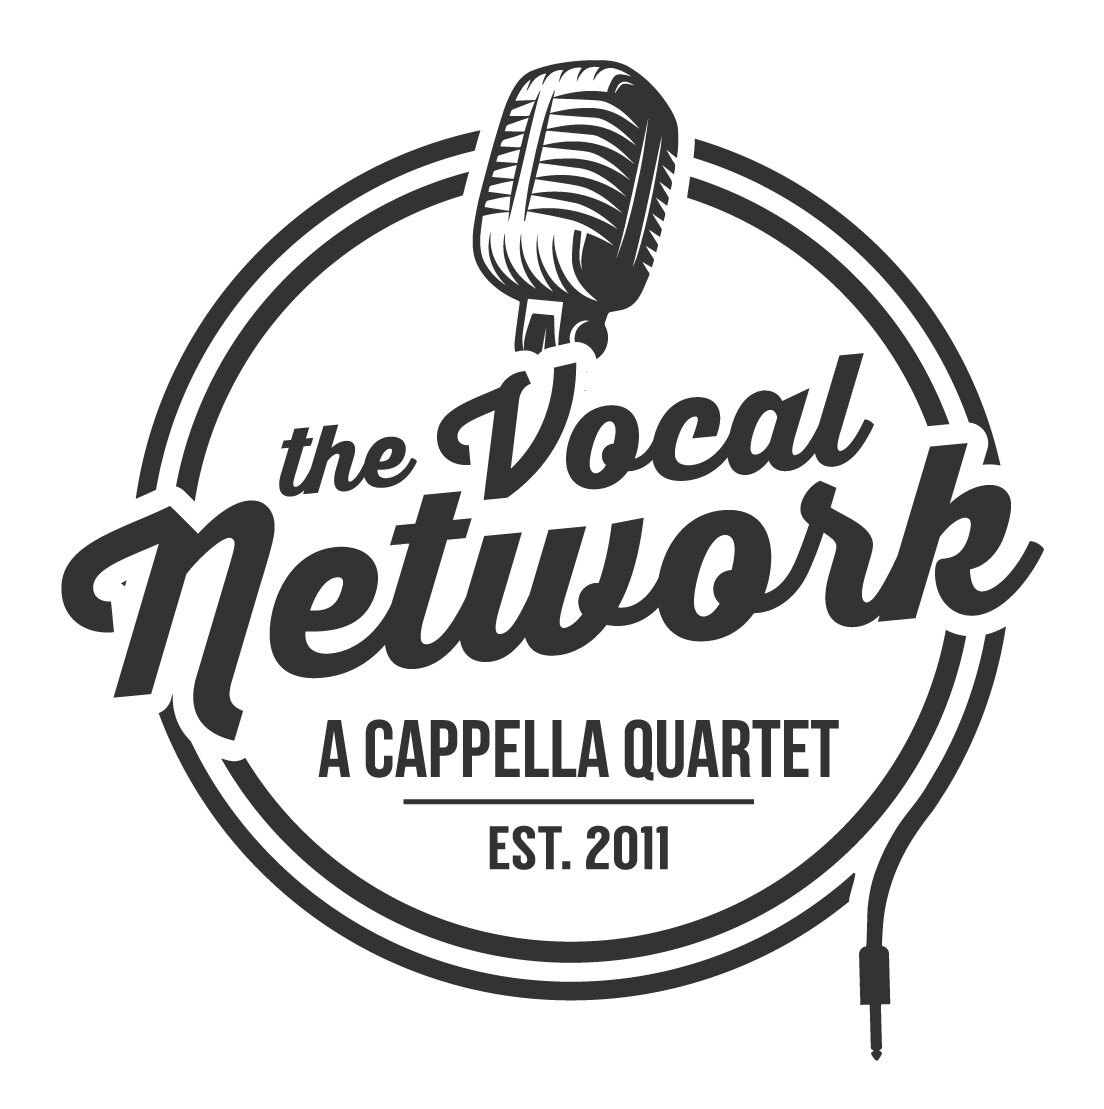 The Vocal Network